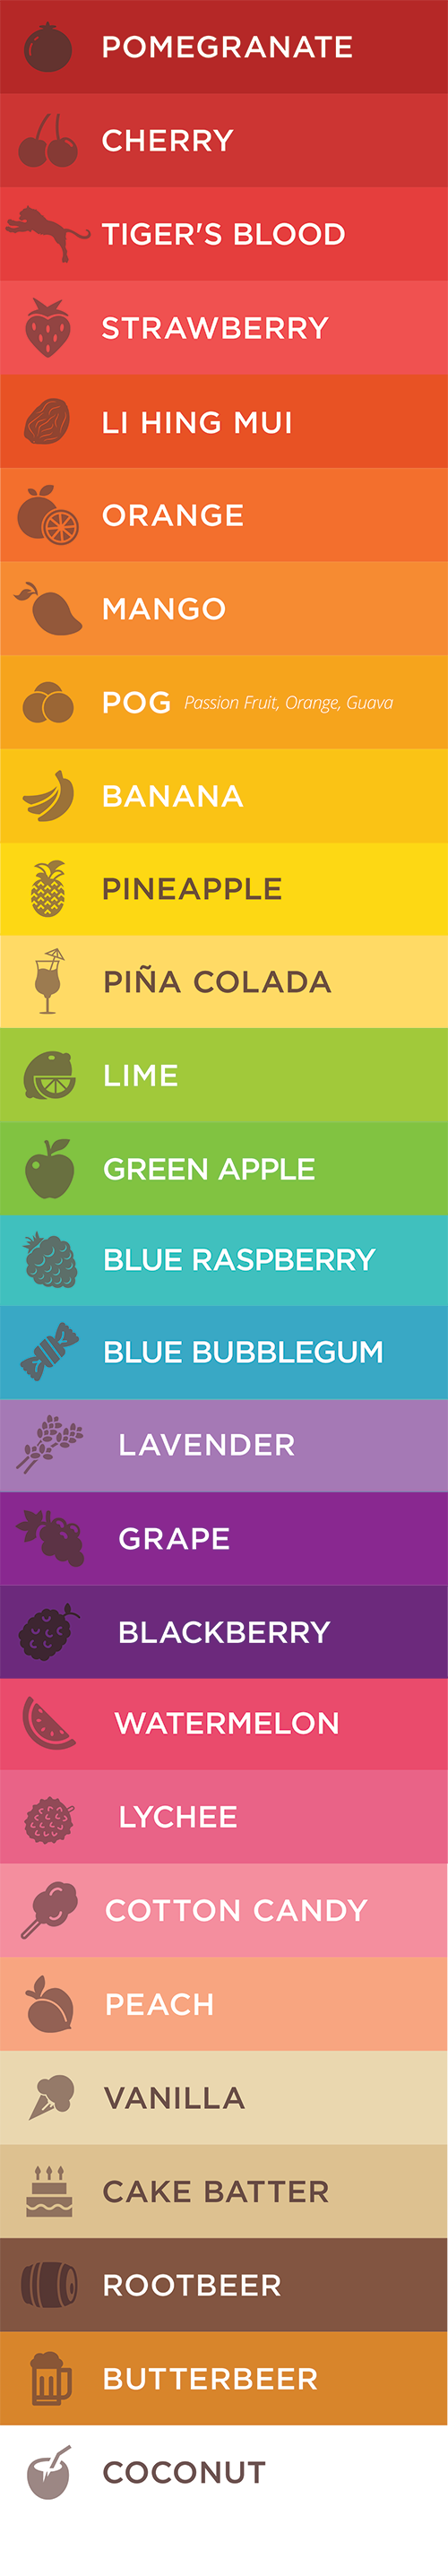 shave ice and drink flavors